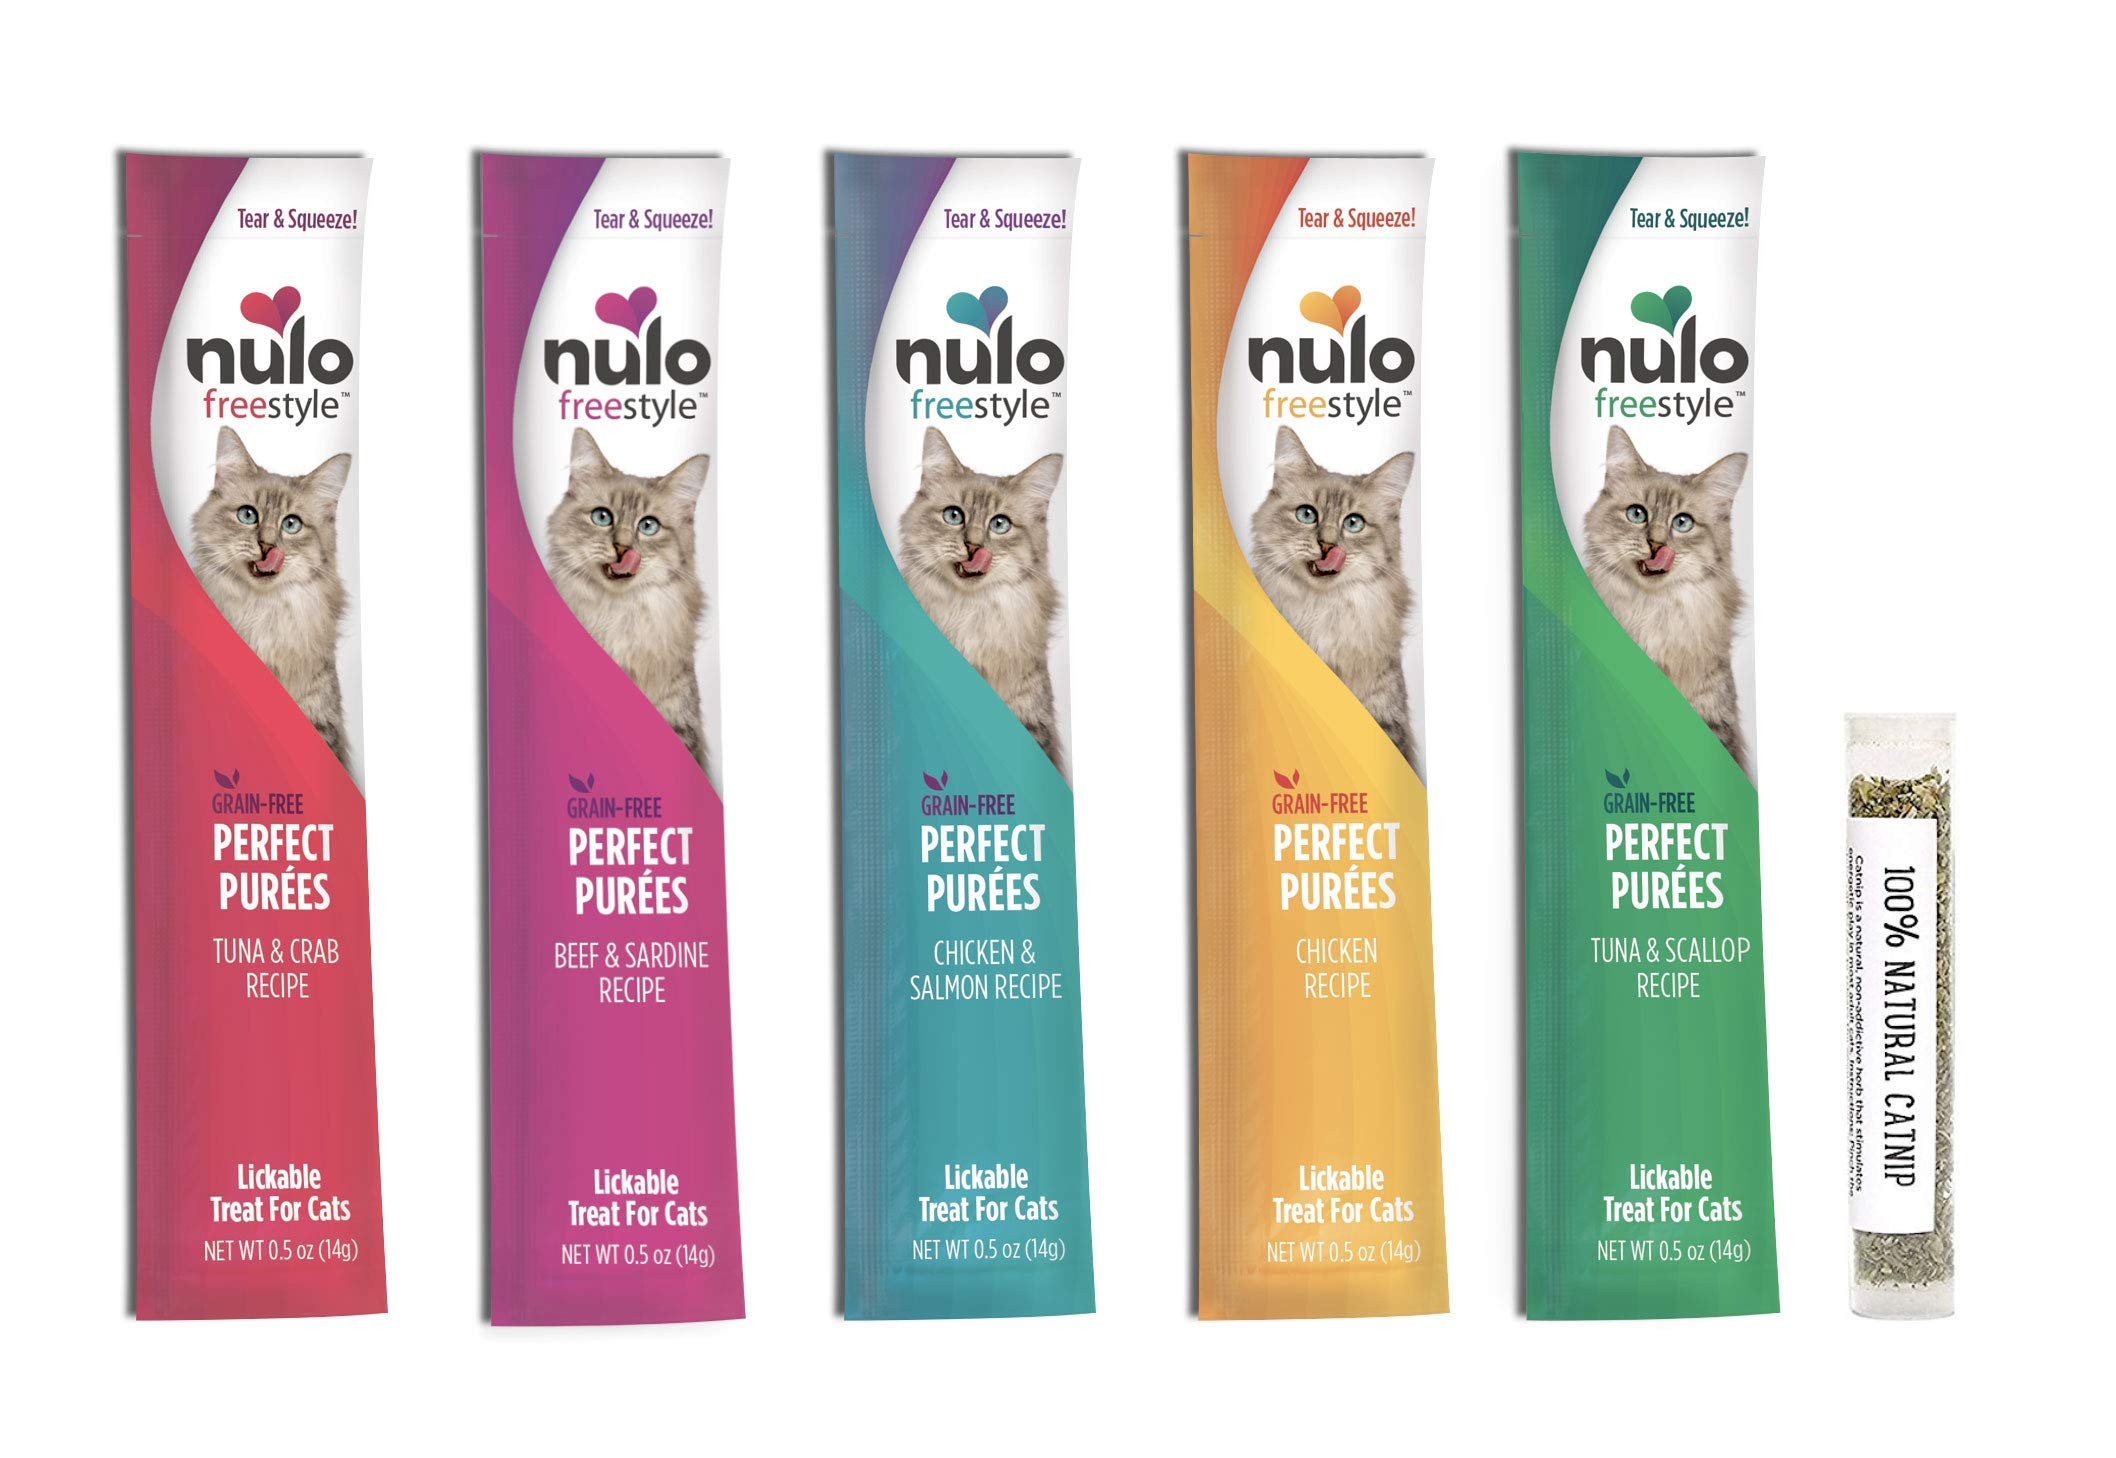 Nulo Freestyle Purfect Purees Grain Free Wet Cat Treat/Food Pouch Variety Pack, 5 Flavors, 0.5 Ounces (15 Total Pouches) and 1 Tube of Amazing Cat Catnip by Nulo